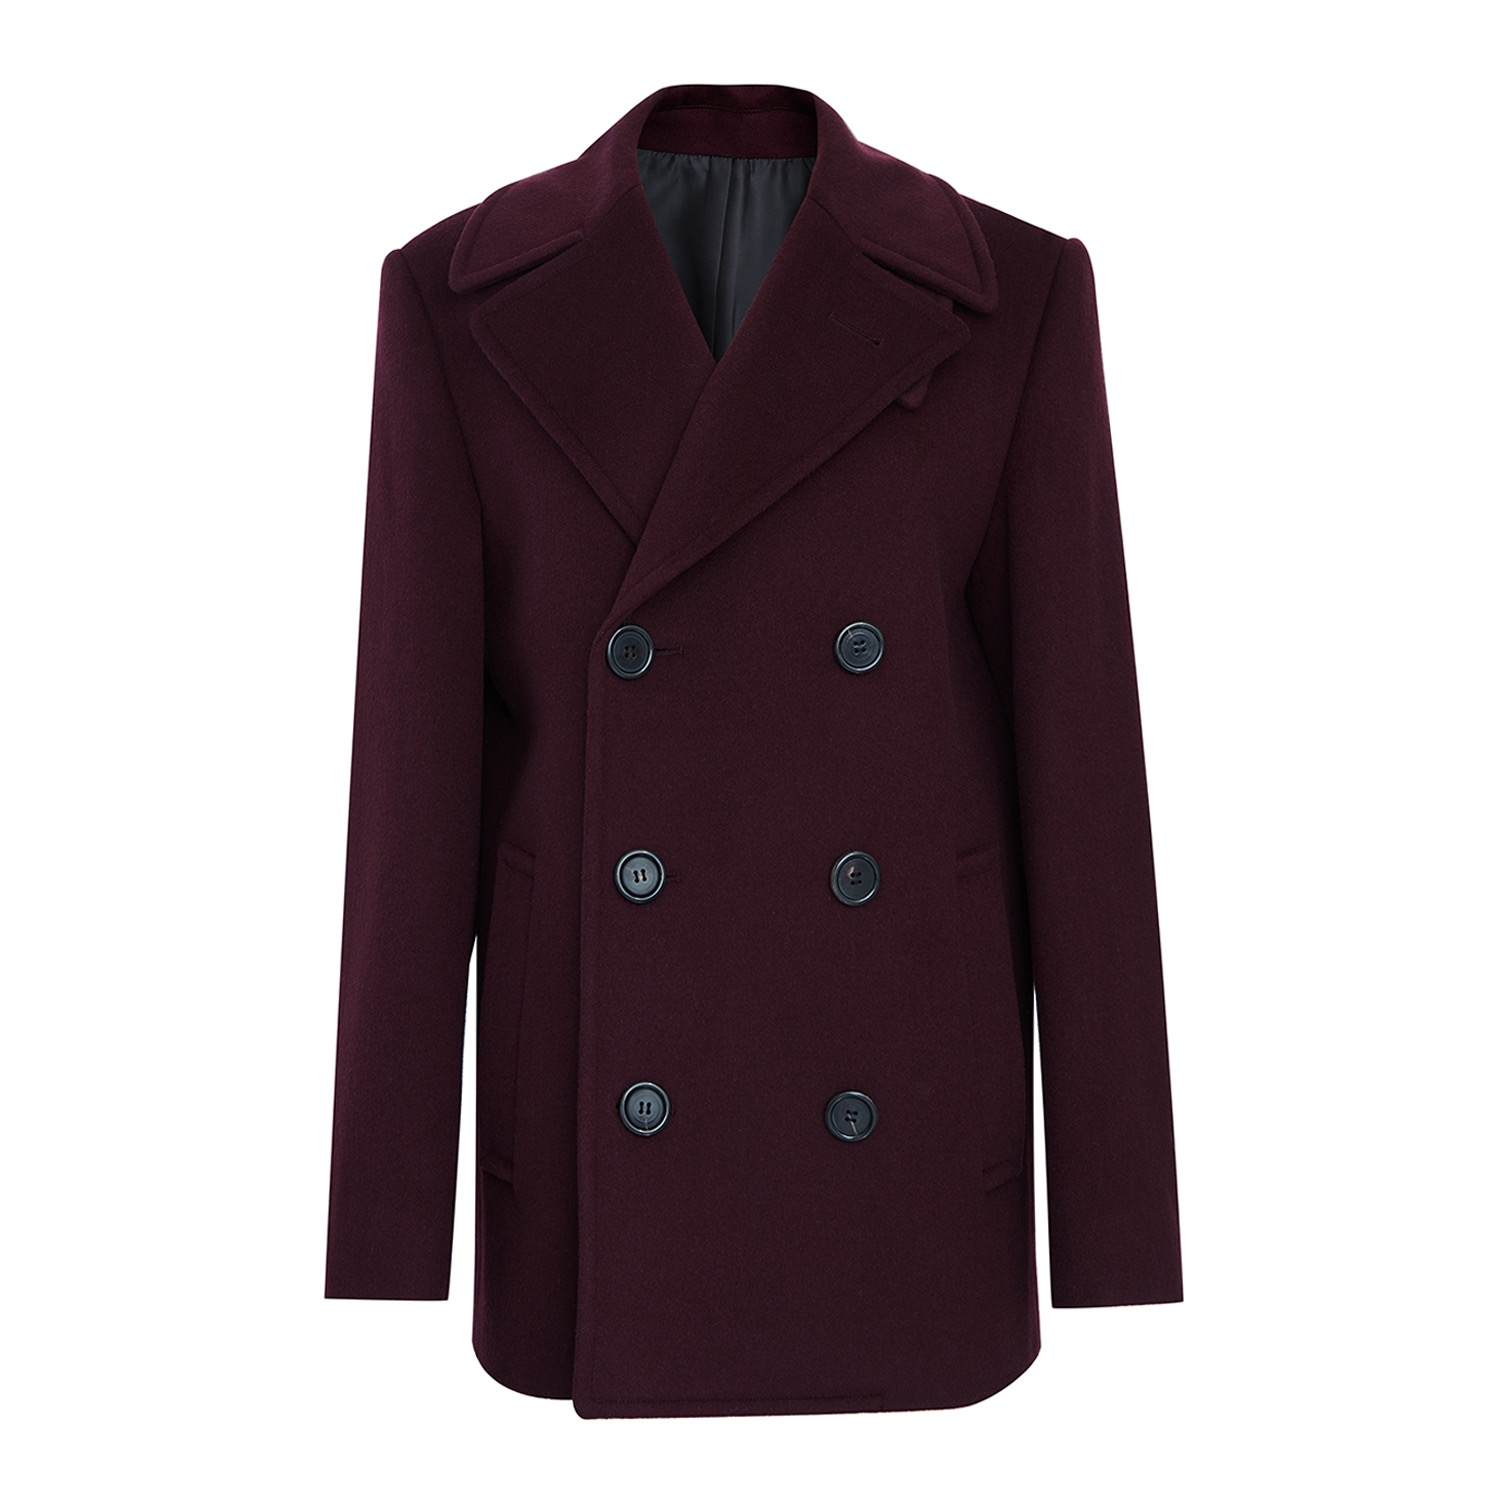 Double pea coat 002 Burgundy